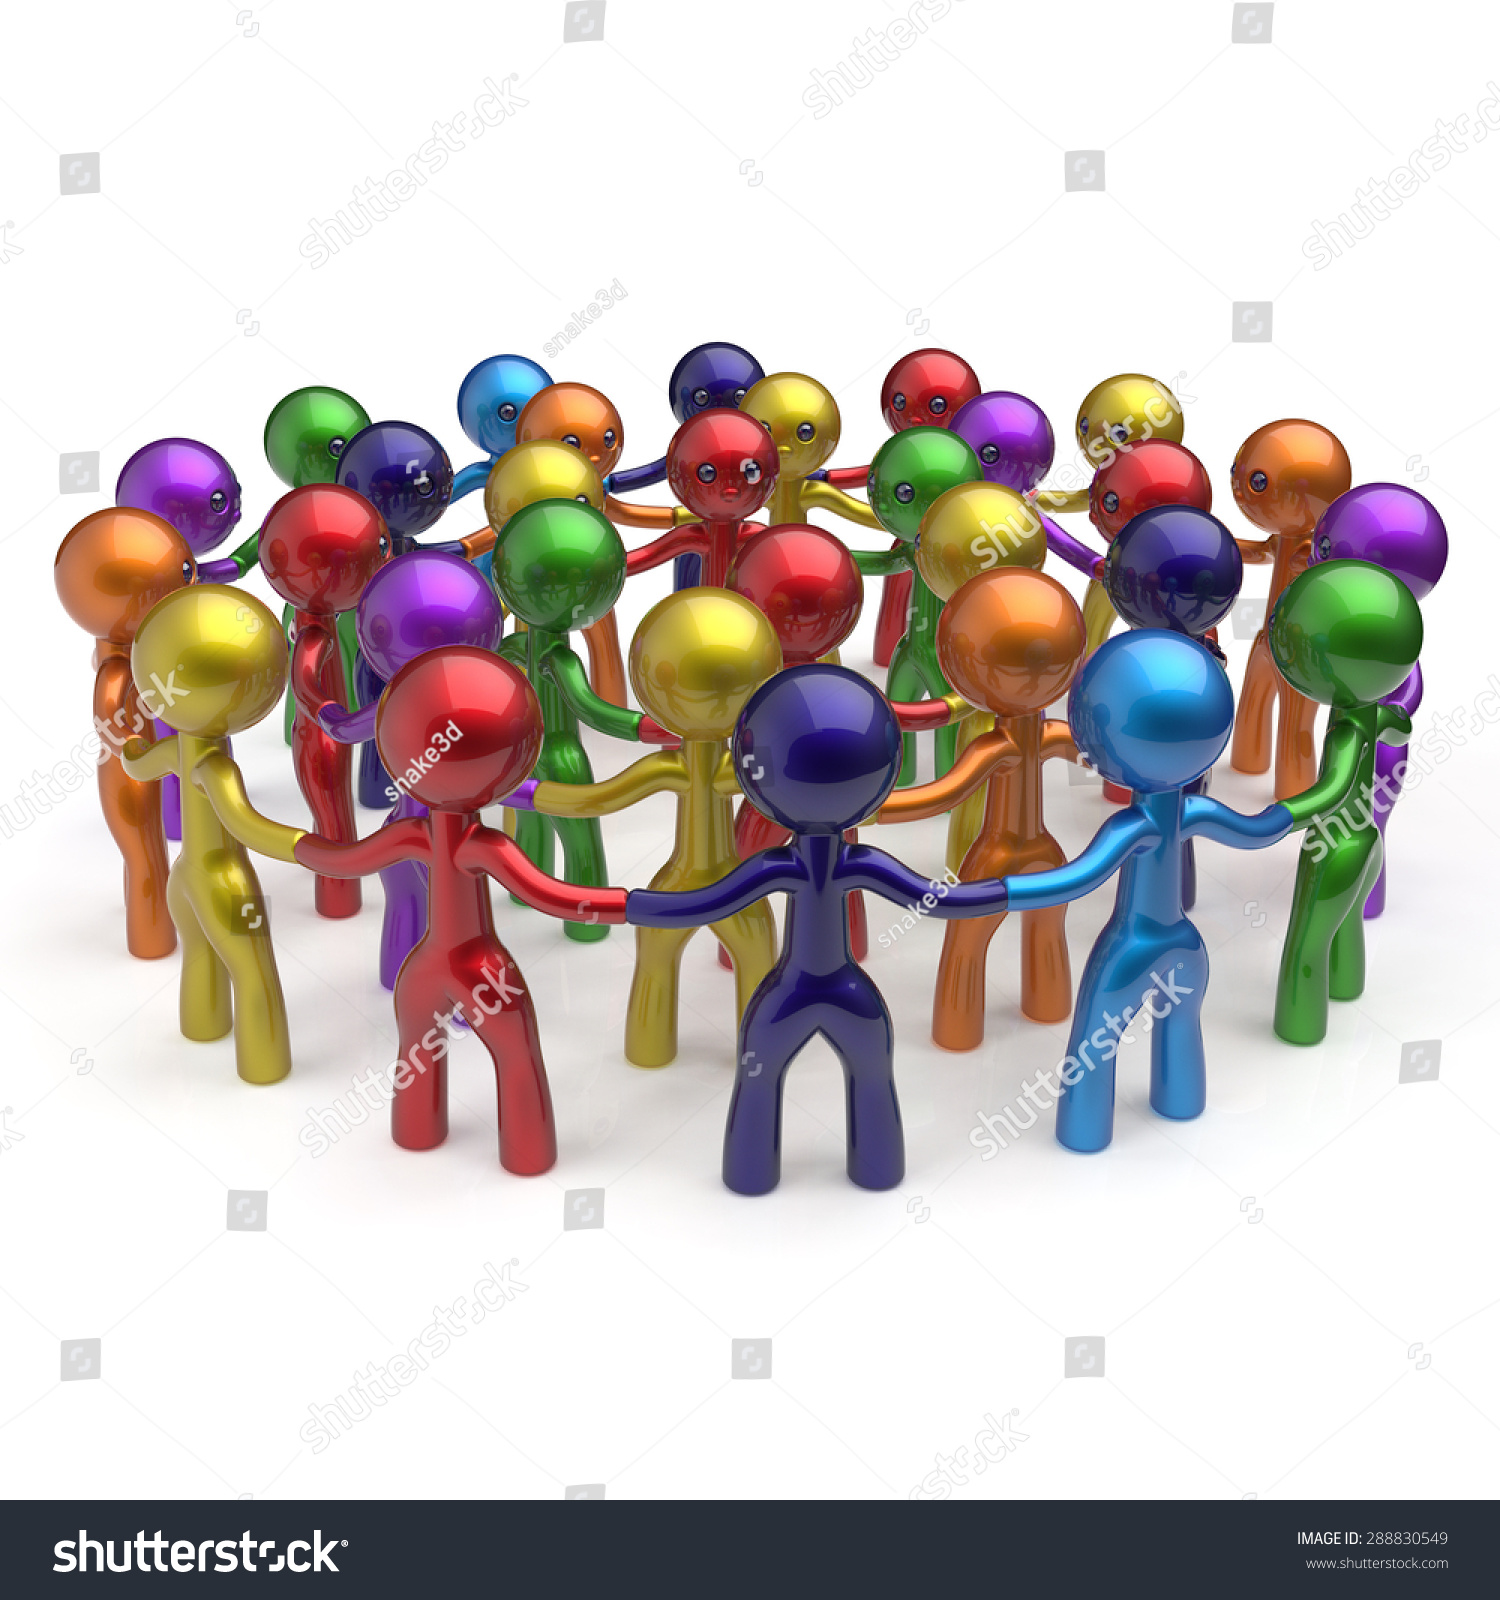 Group Of 6 Cartoon Characters : Social network worldwide large group people stock